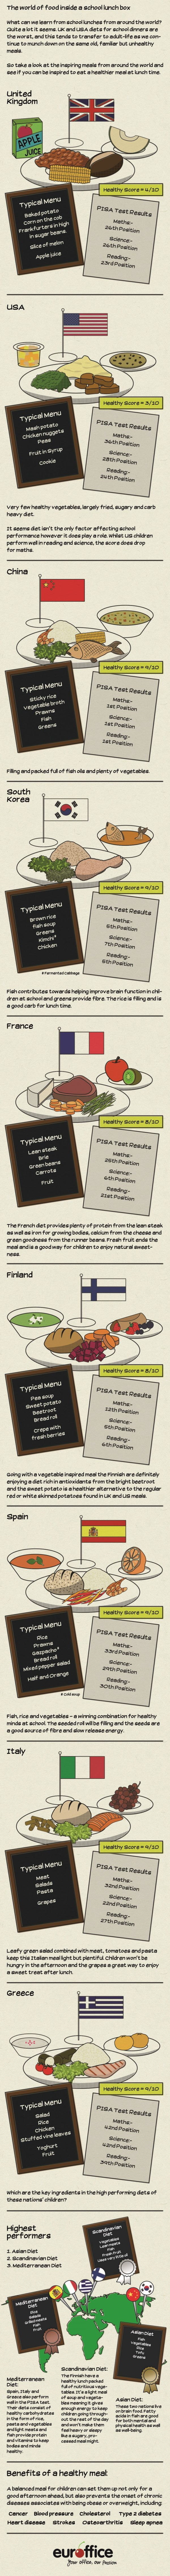 around the world in school lunchboxes infographic